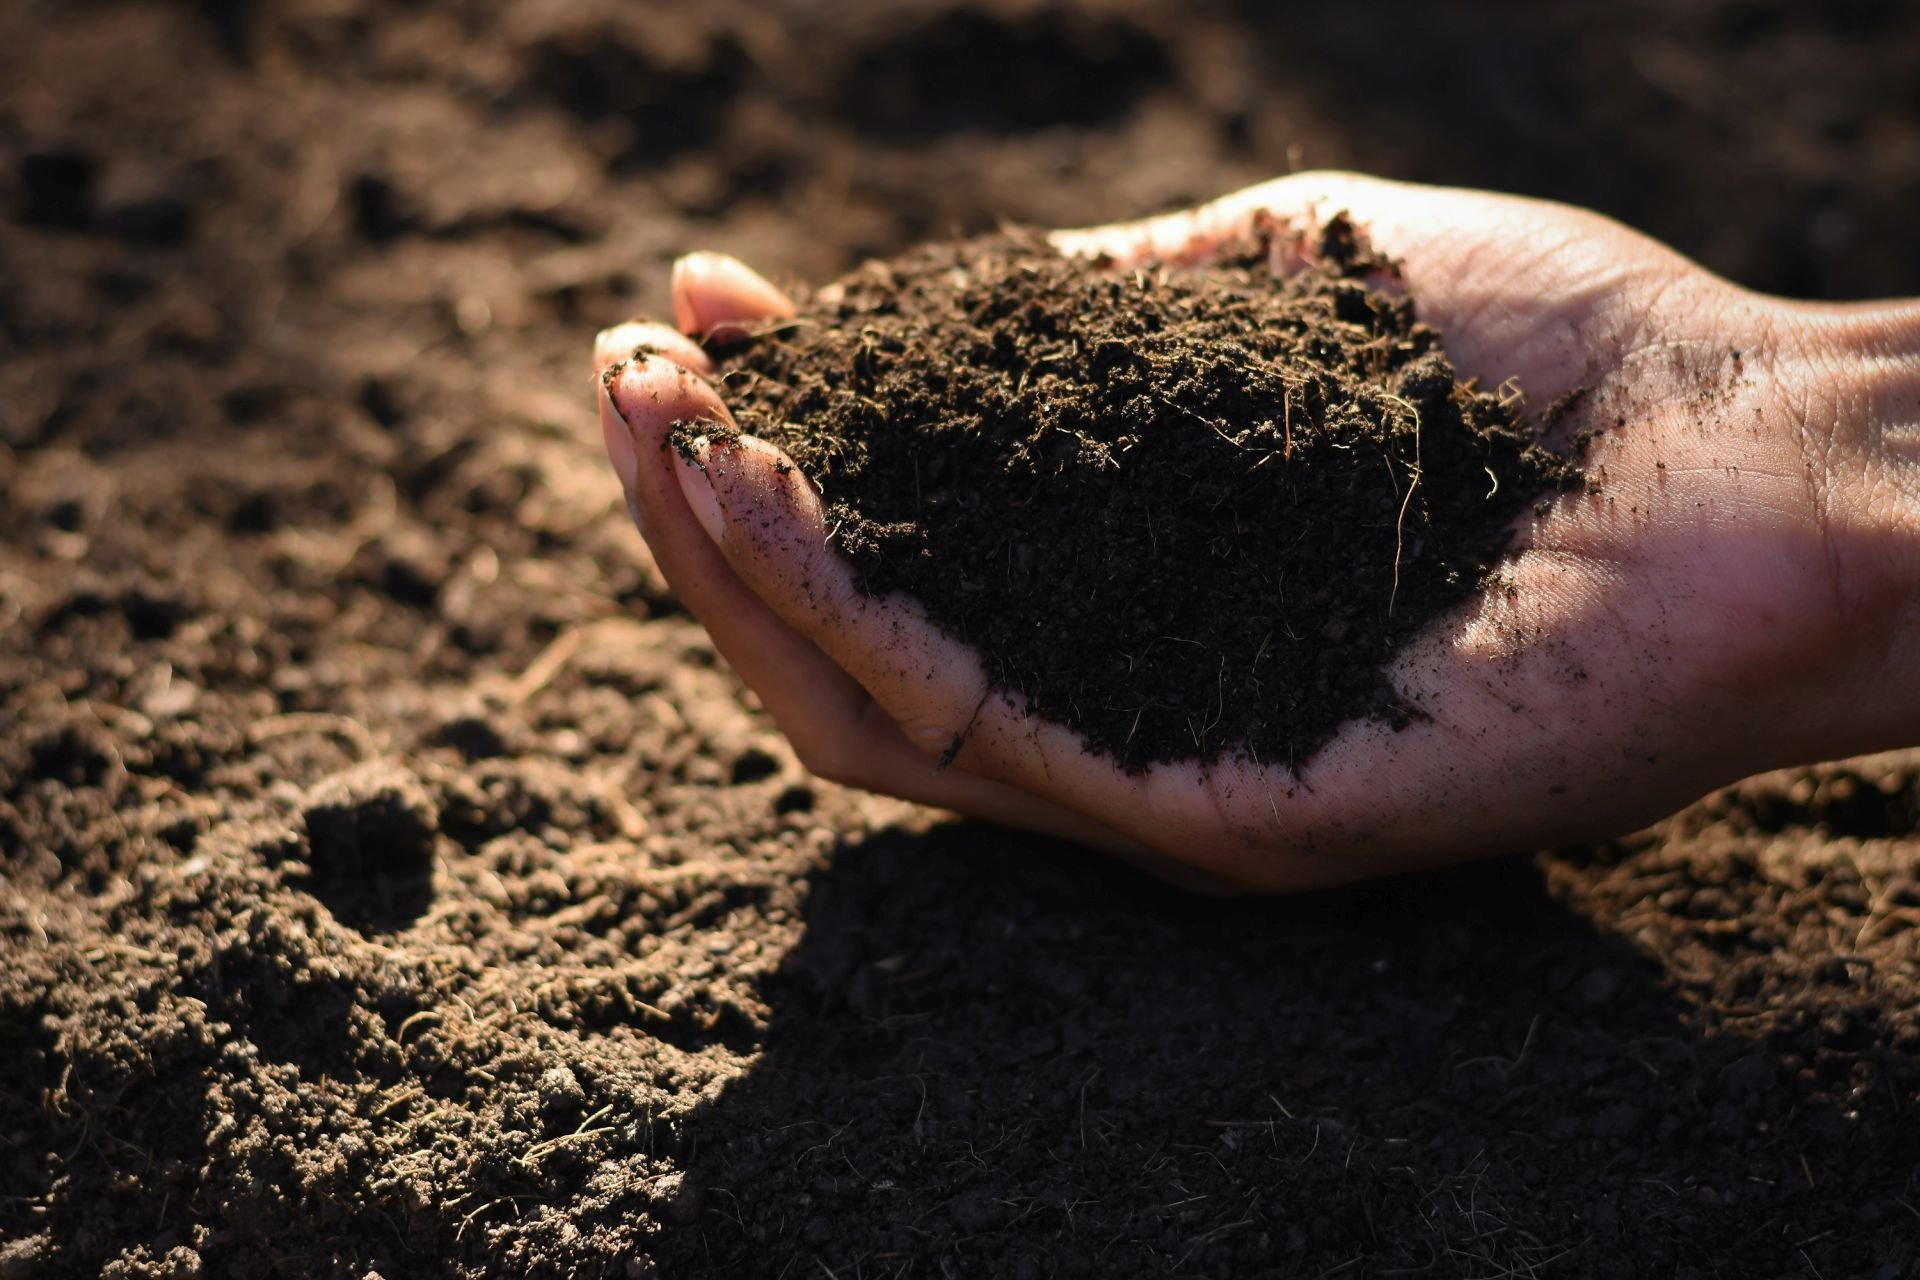 The hands of the agricultural men are picking the best soil for planting.